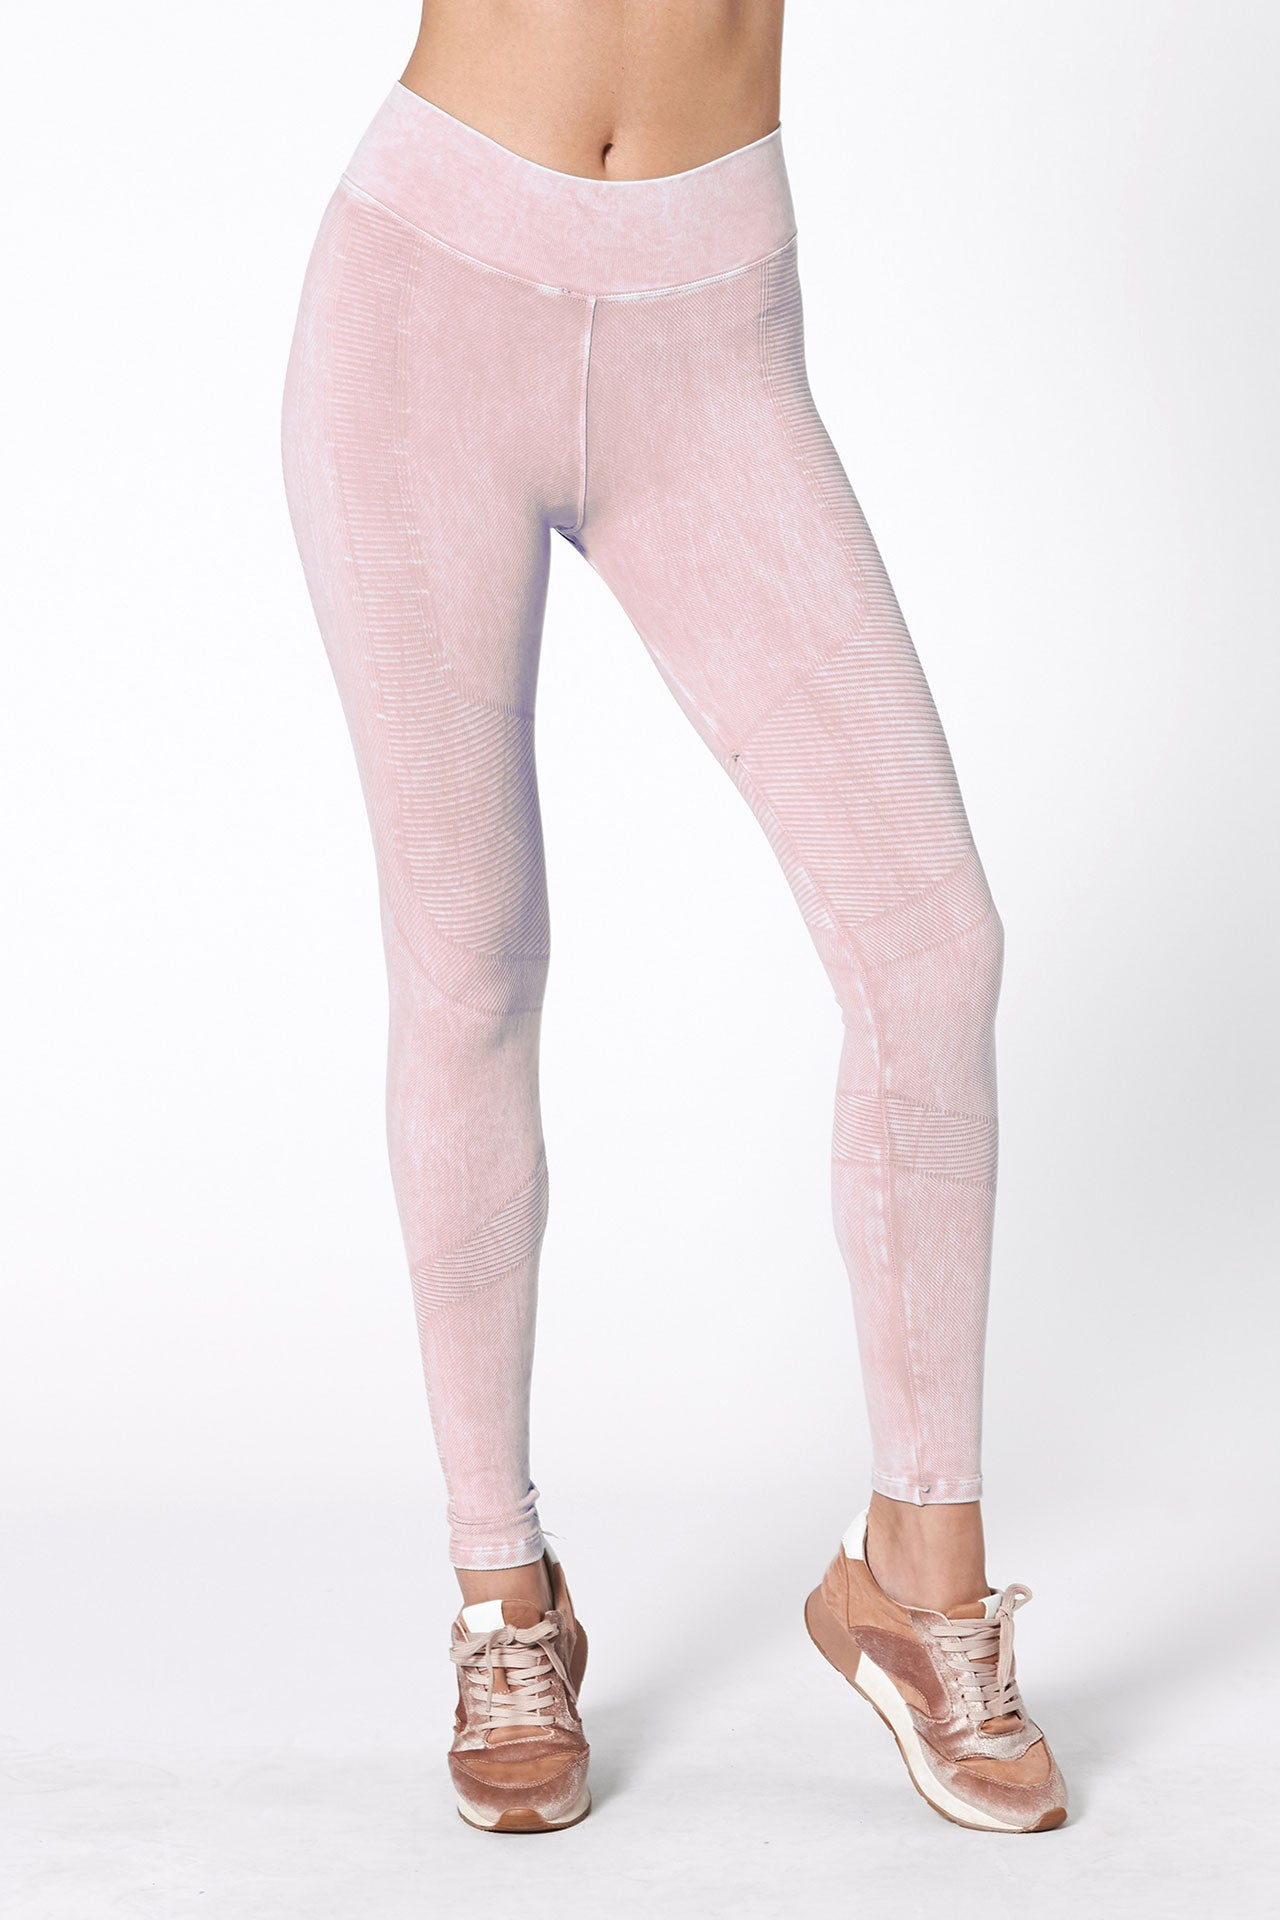 One by One Legging - Sheer Pink